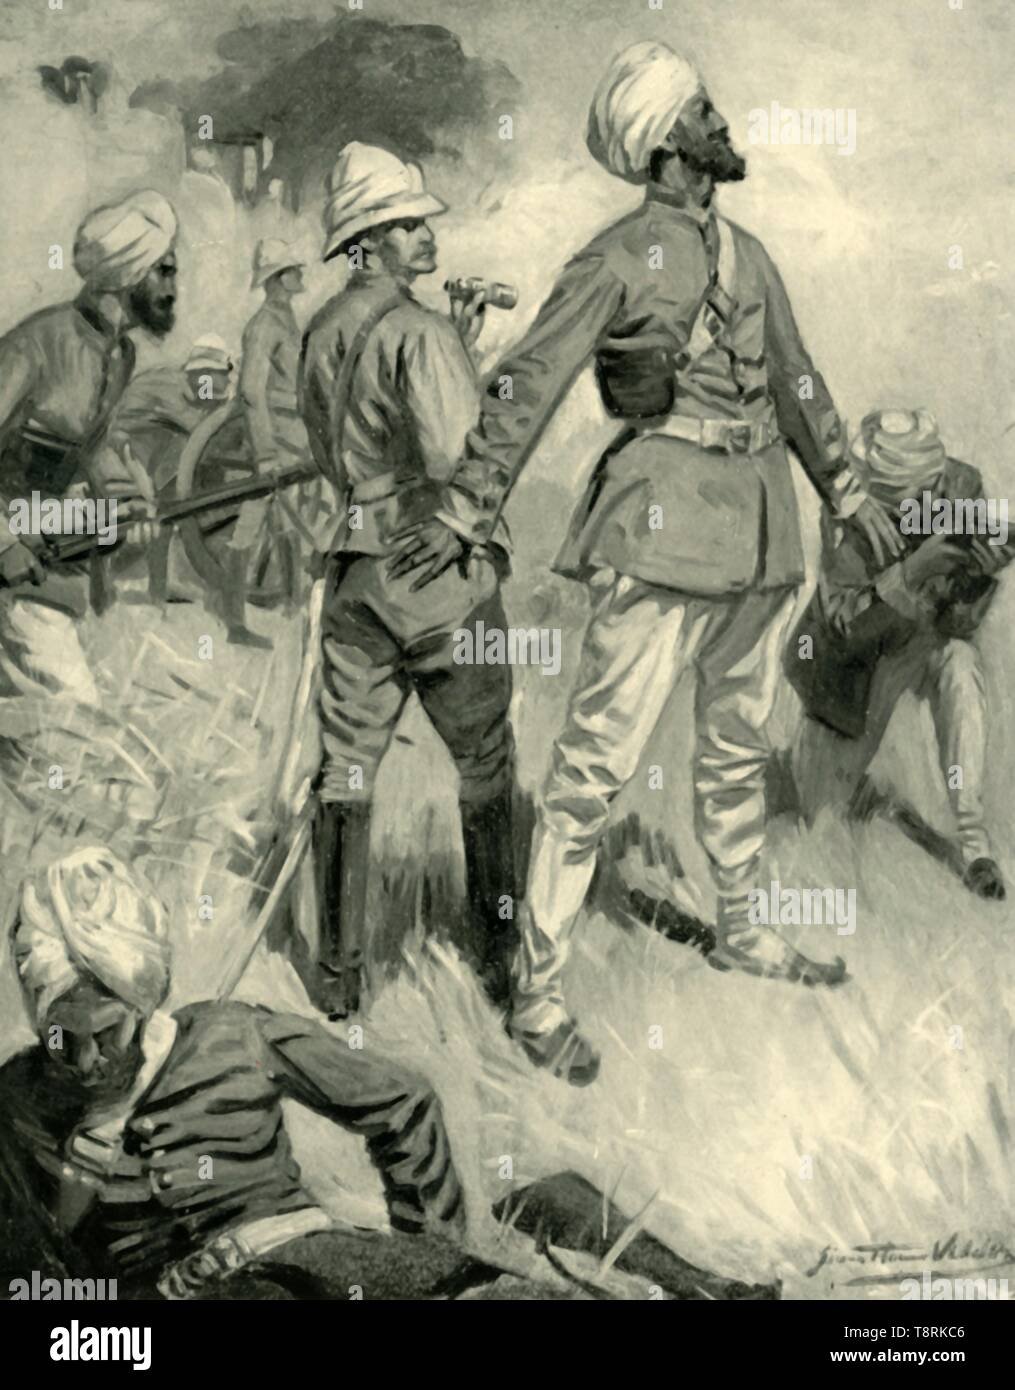 'The Devotion of General Roberts's Sikh Orderly at Spingawi', (1901). Incident during the Afghan Wars: 'on my being hit in the hand by a spent bullet, and turning to look round in the direction it came from, I beheld one of the Sikhs' [Dhyan Singh his notable name] 'standing with his arms stretched out trying to screen me from the enemy, which he could easily do, for he was a grand specimen of a man, head and shoulders taller than myself'. Account by British major general Sir Frederick, 1st Earl Roberts (1832-1914) of an event that occurred c1878 on the border between Afghanistan and India (no - Stock Image